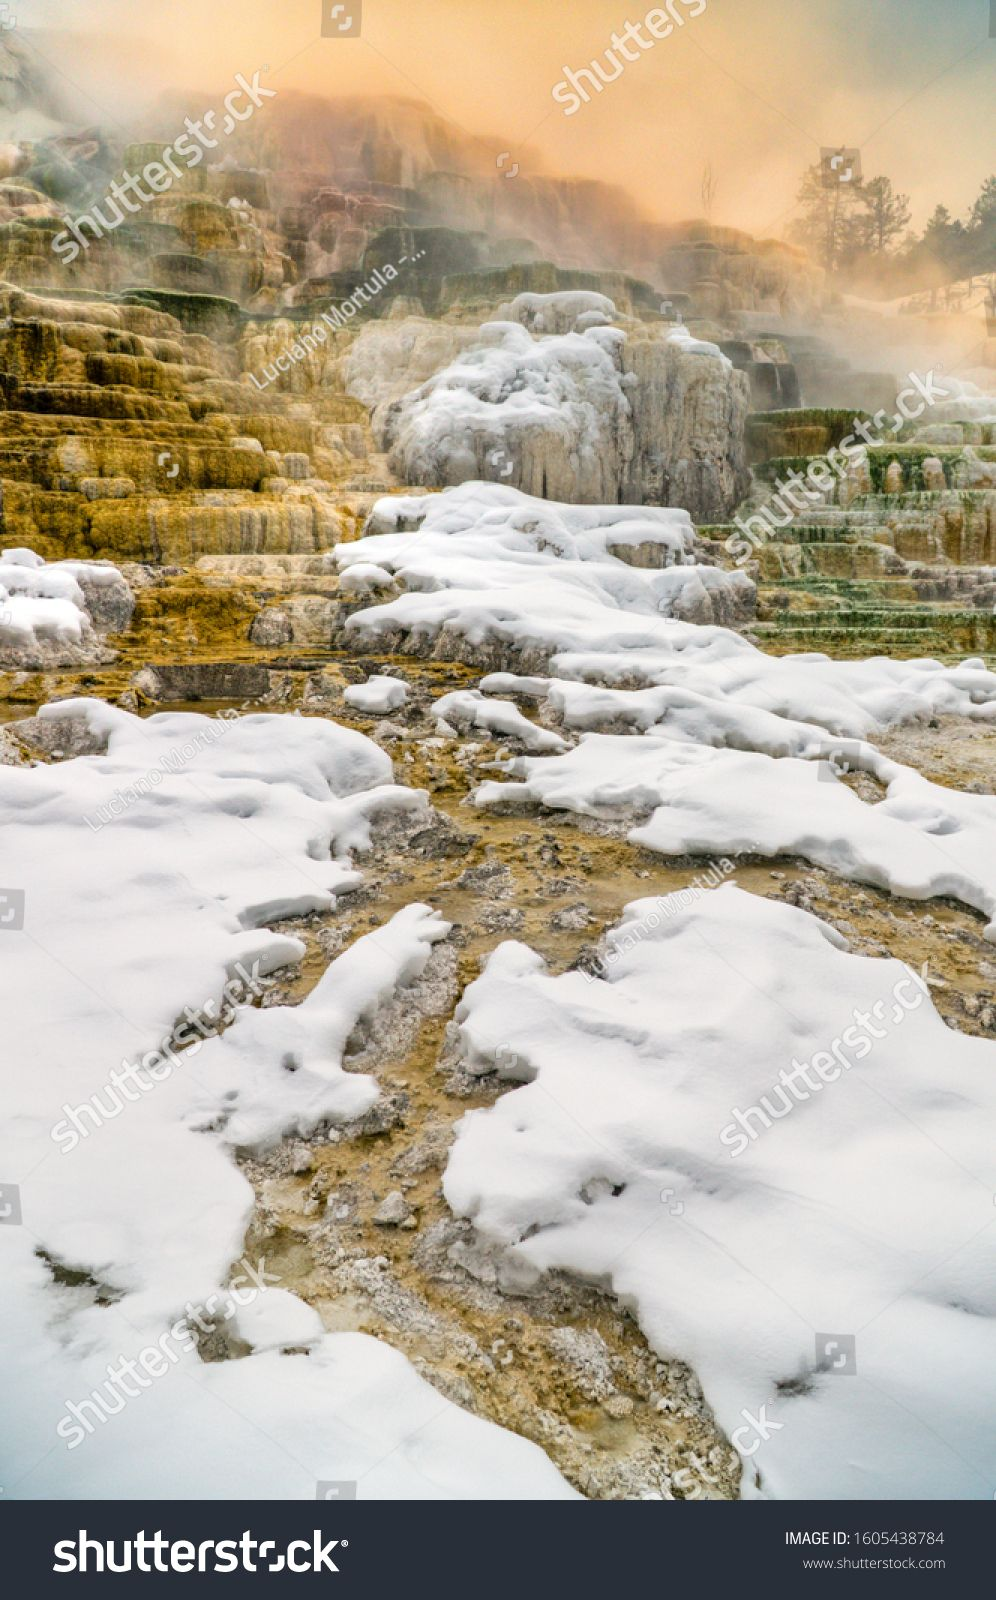 View of Canary Springs and terraces of Mammoth Hot Springs area during winter, Yellowstone National Park, USA. #Sponsored , #ad, #terraces#Mammoth#Hot#View